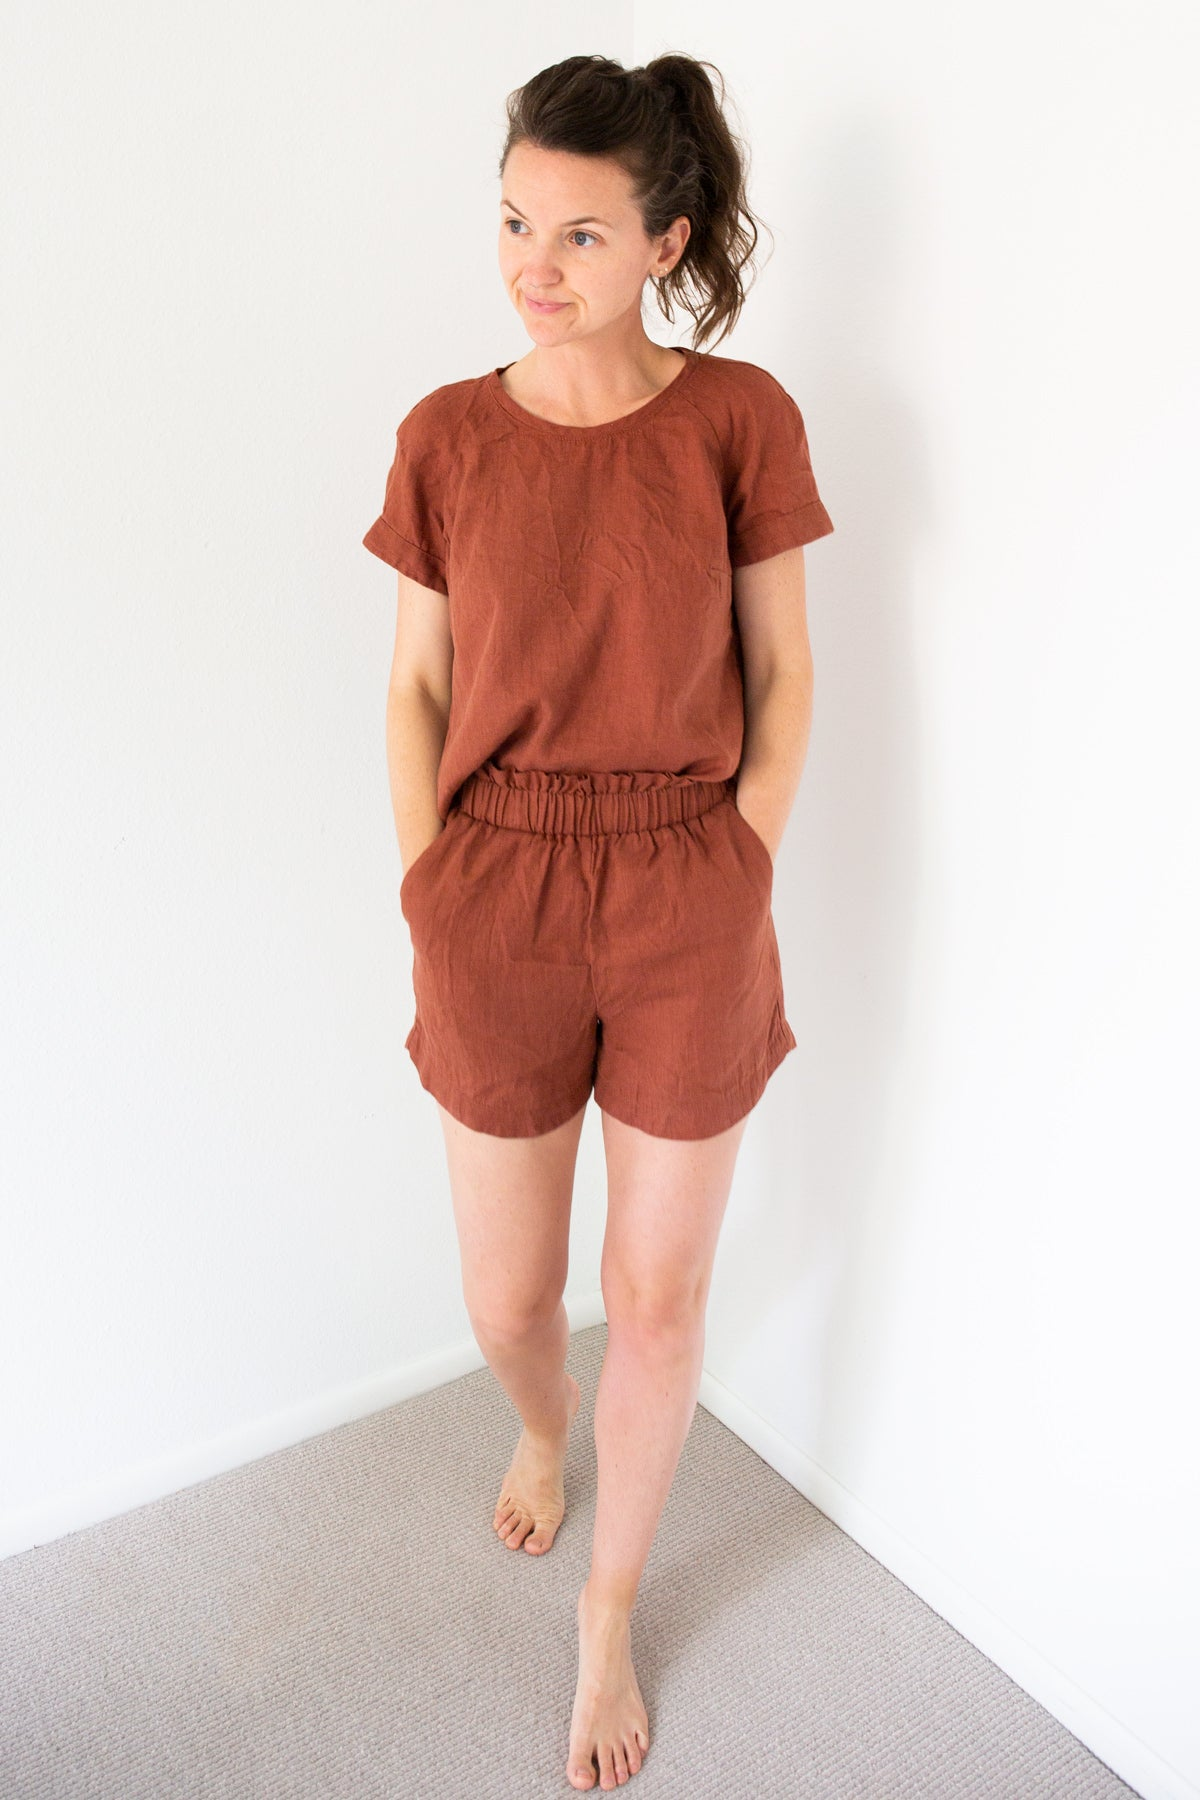 Coram Top and Peppermint Spring Shorts Sewing Patterns